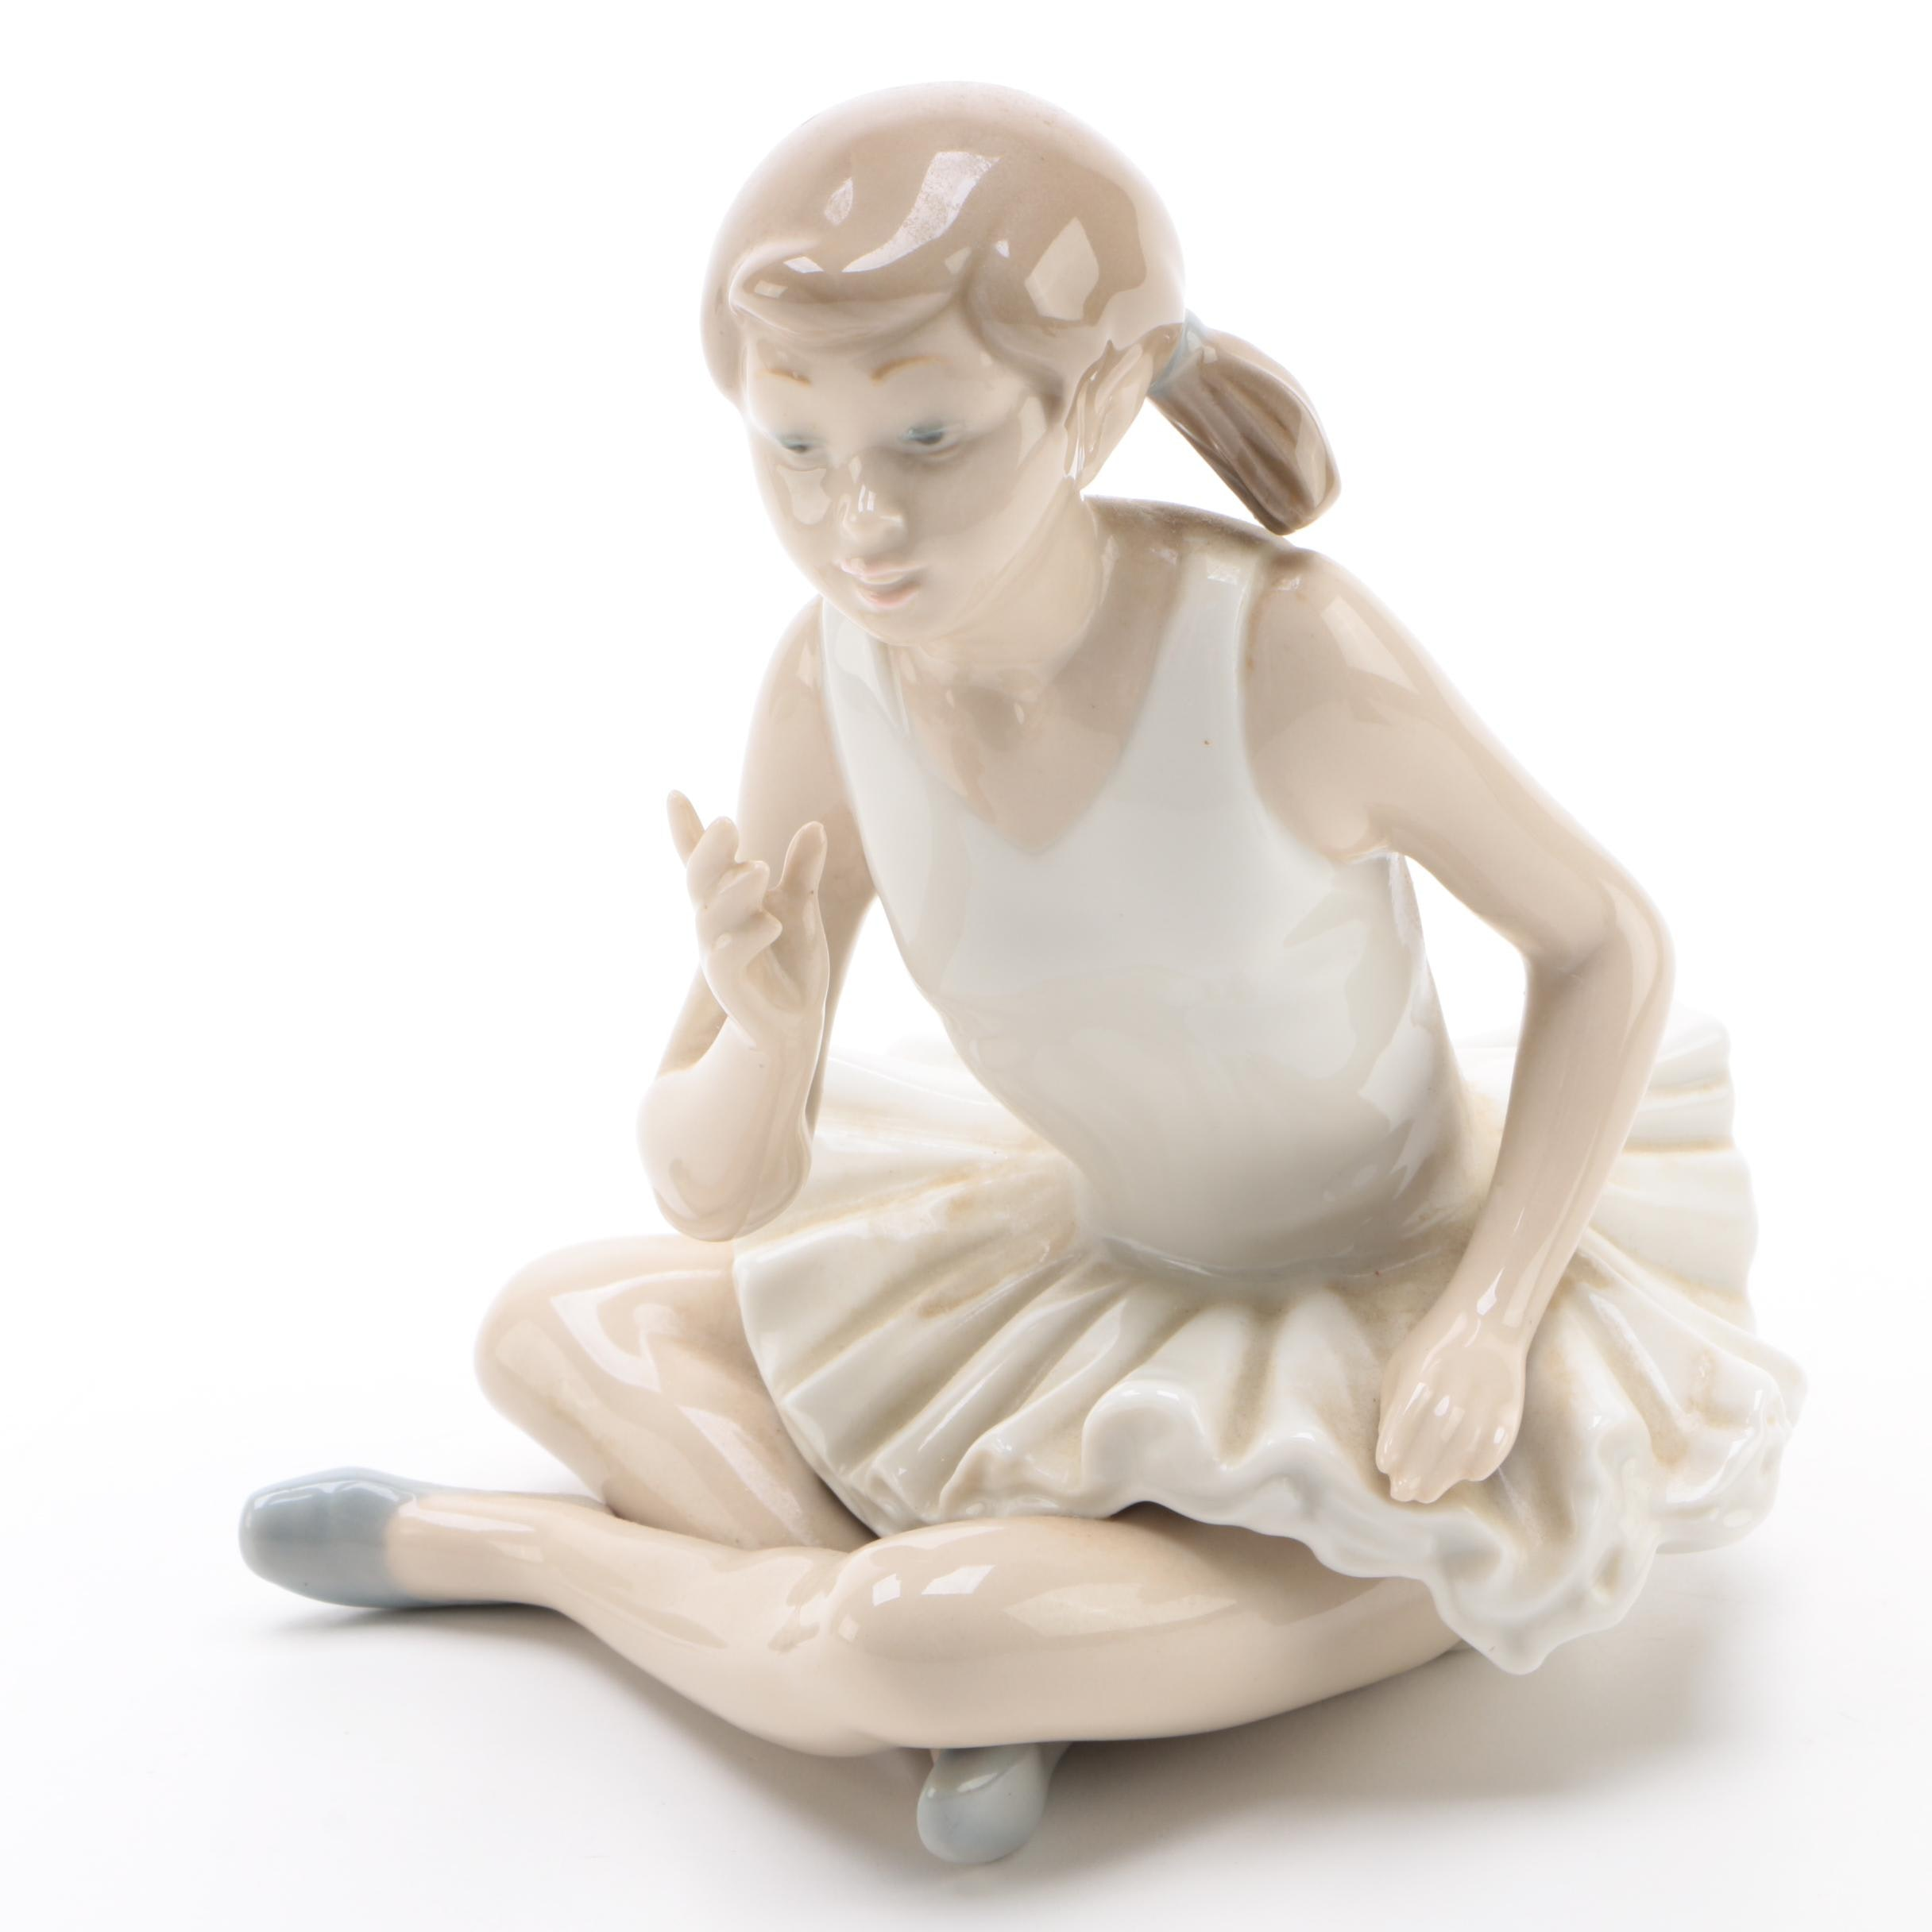 "Nao by Lladró ""Sitting Ballerina"" Porcelain Figurine, Late 20th Century"